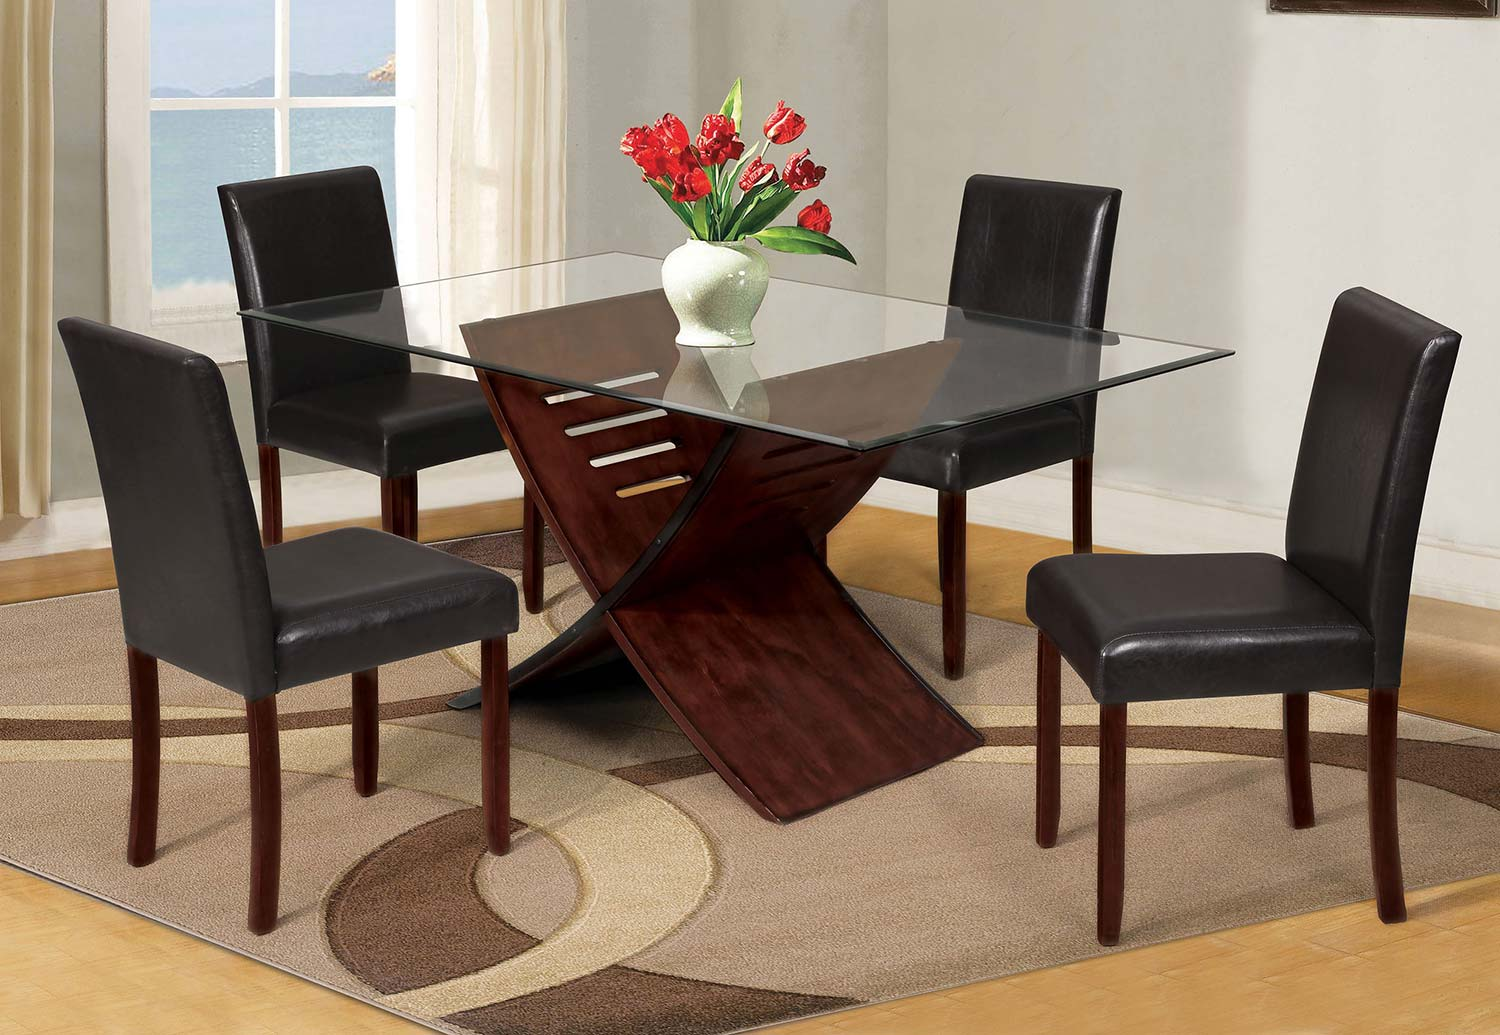 Acme Trava Dining Set - Cherry/Clear Glass